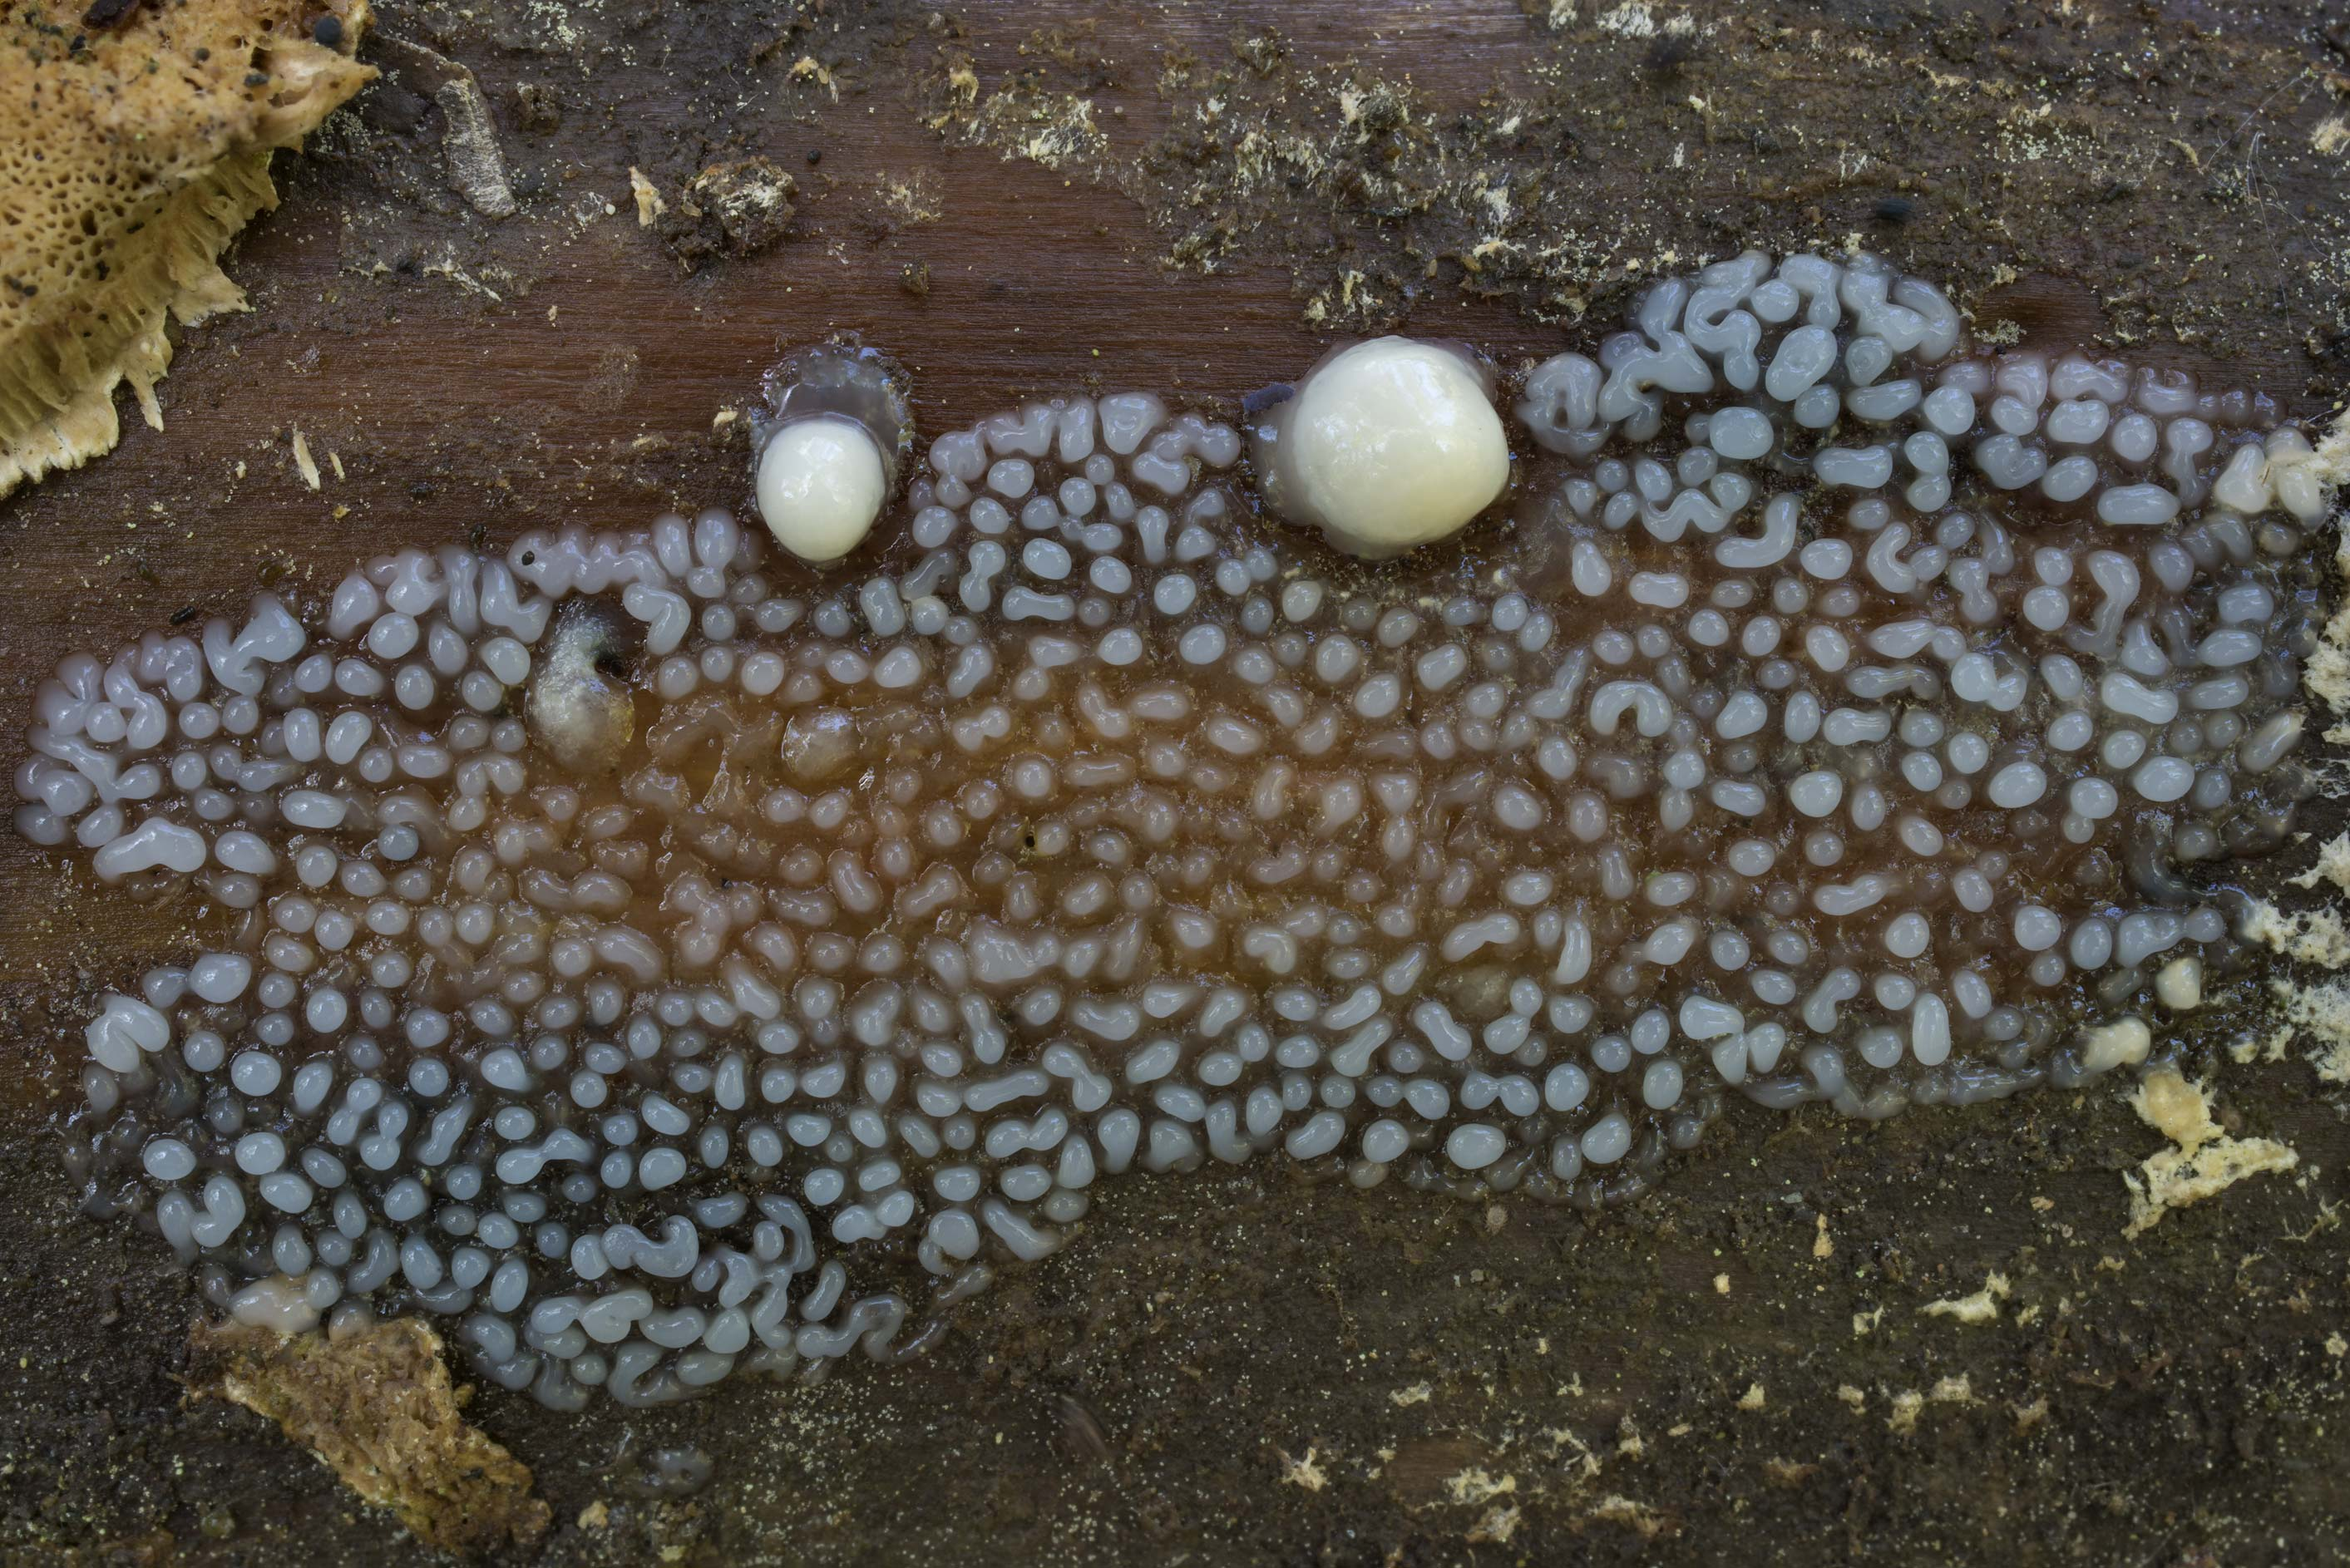 Immature coral slime mold (Ceratiomyxa...north from St.Petersburg. Russia